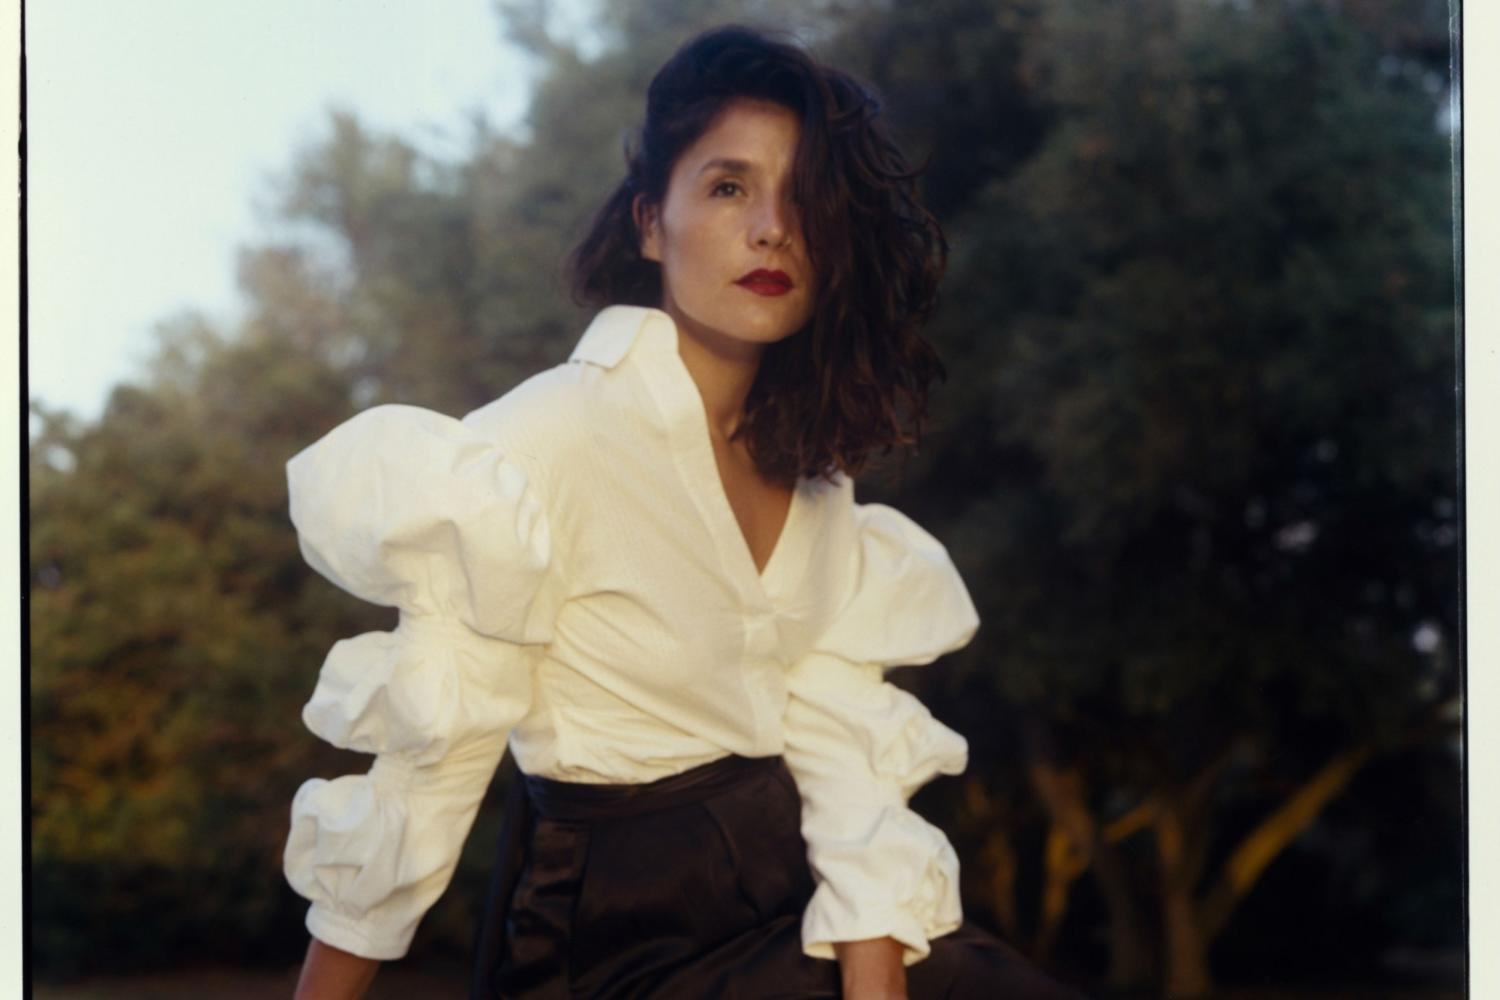 Jessie Ware shares new single 'Overtime'